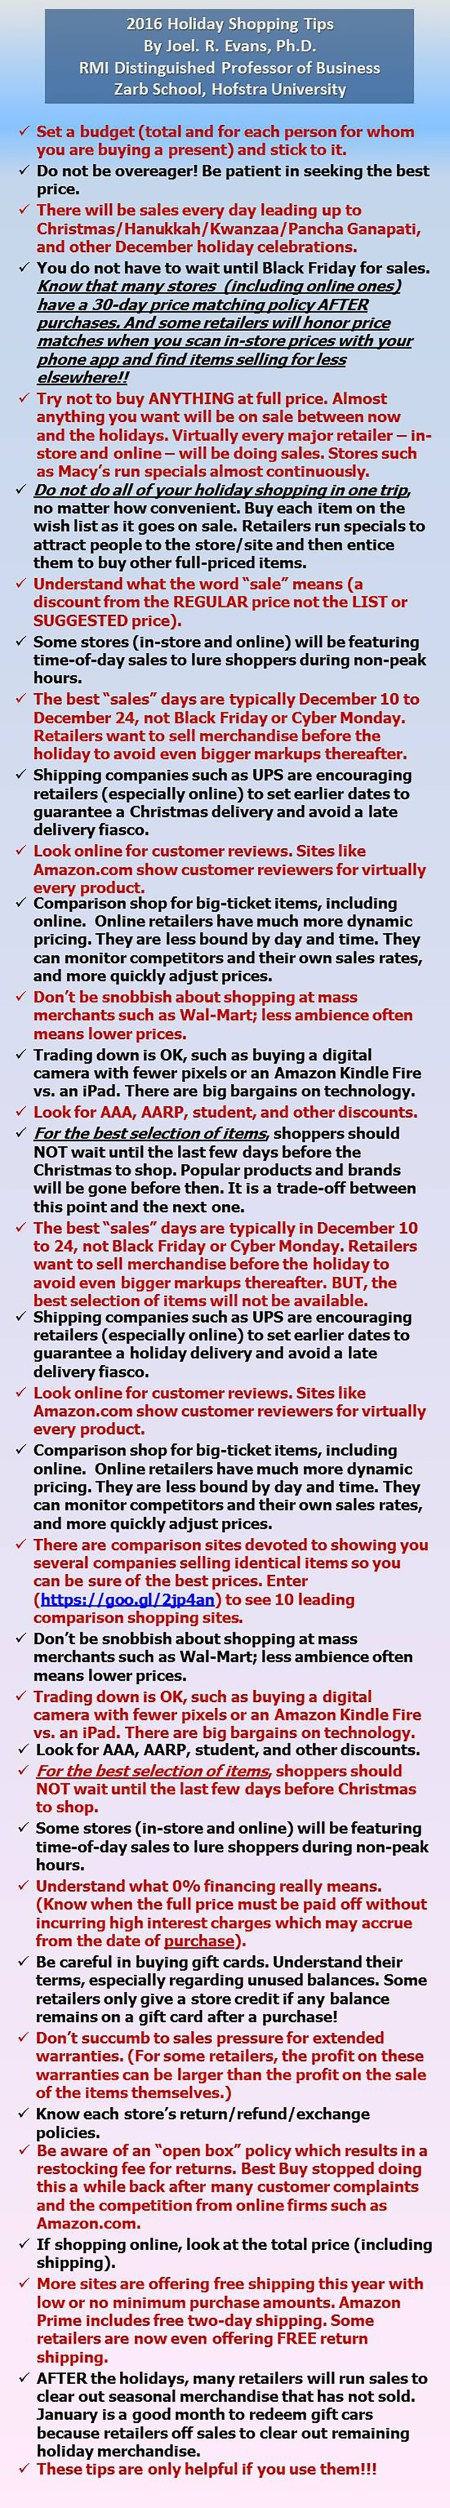 2016-shopping-tips